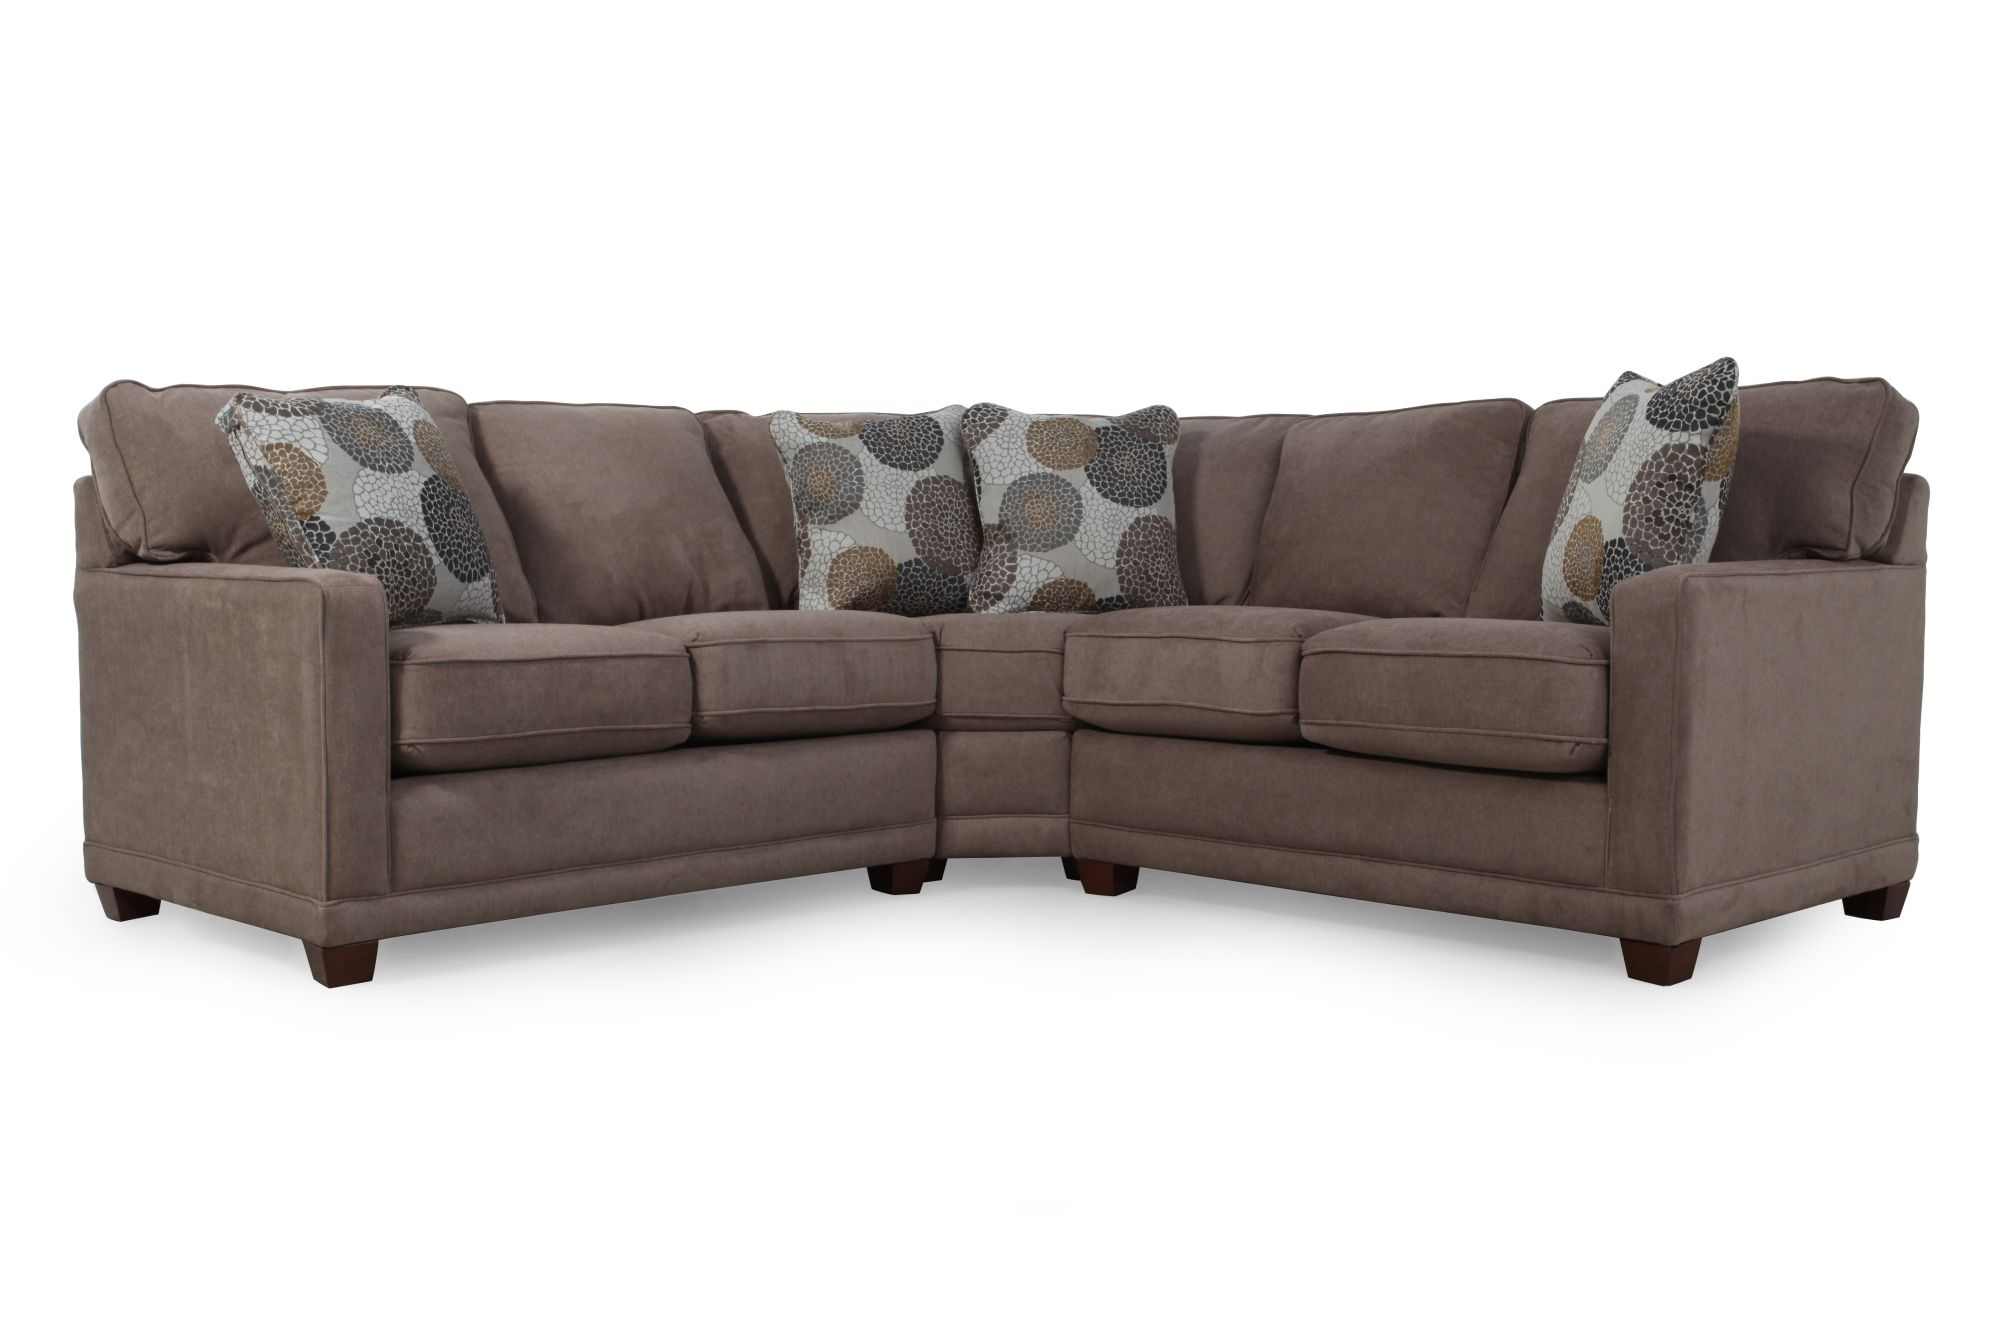 Lazy Boy Sectional Sofa Intended For Entranching La Z Collins Home throughout Sectional Sofas at Lazy Boy (Image 10 of 15)